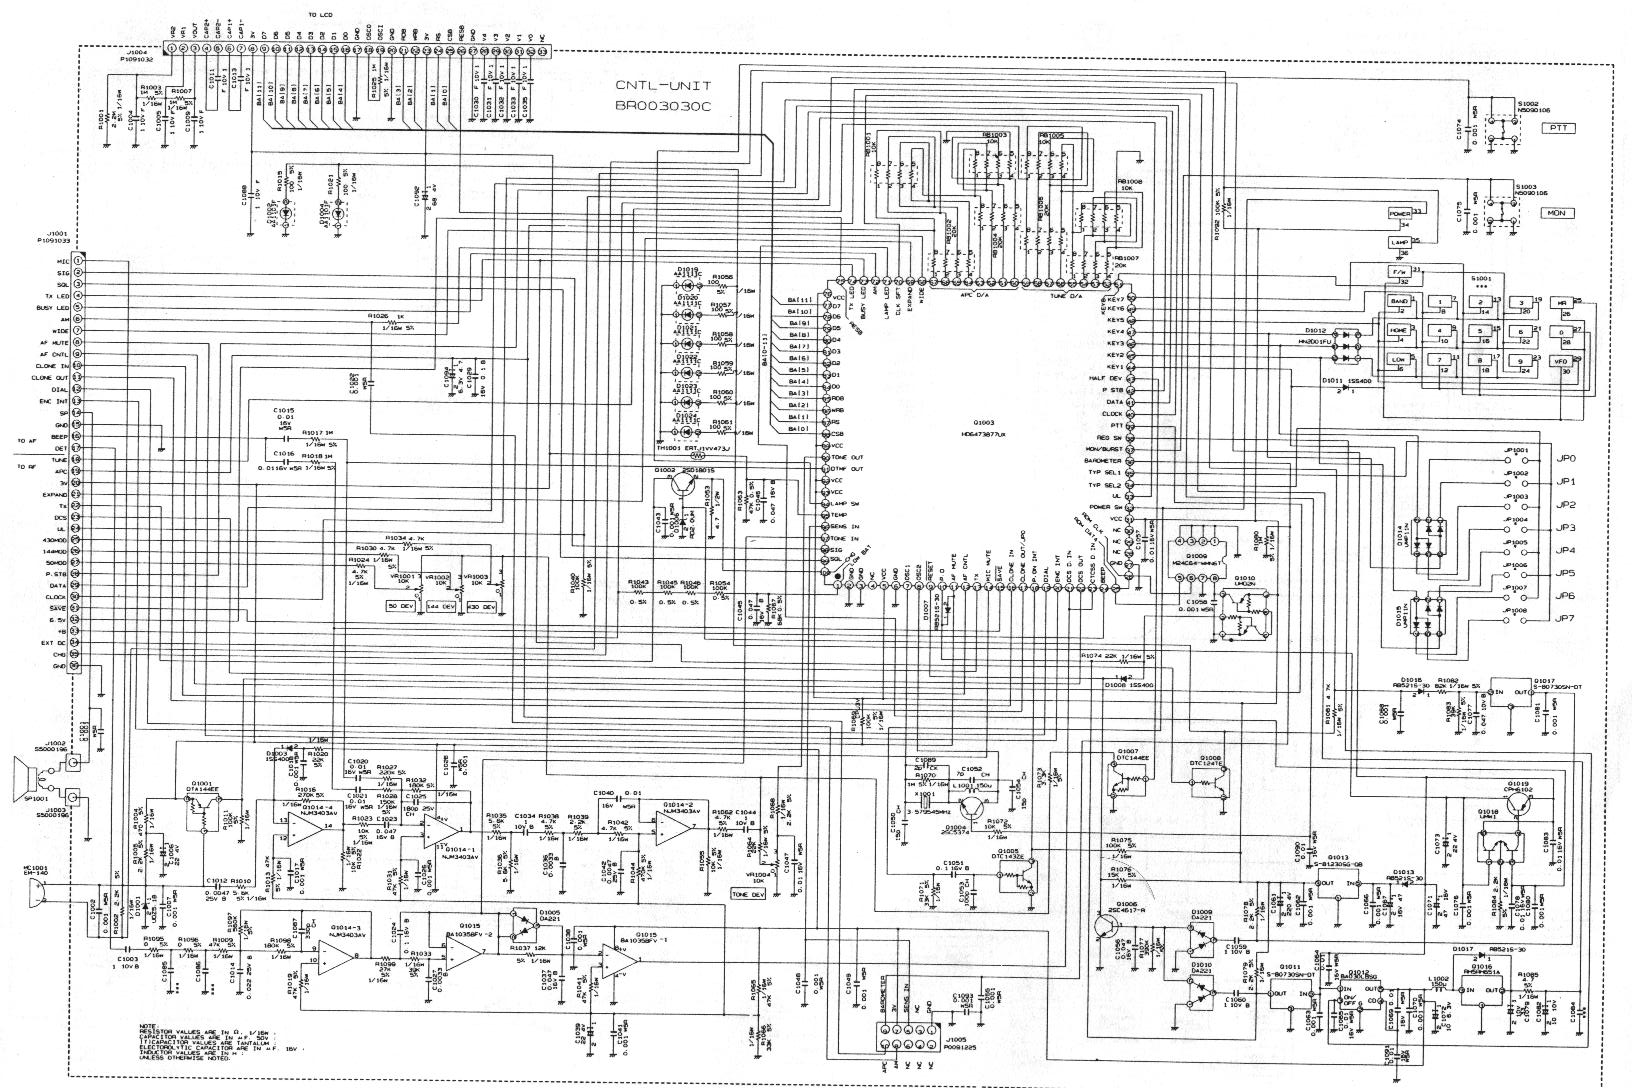 YAESU VX 5 Schematic b index of pub radio_manuals yaesu Yaesu G-450A at sewacar.co